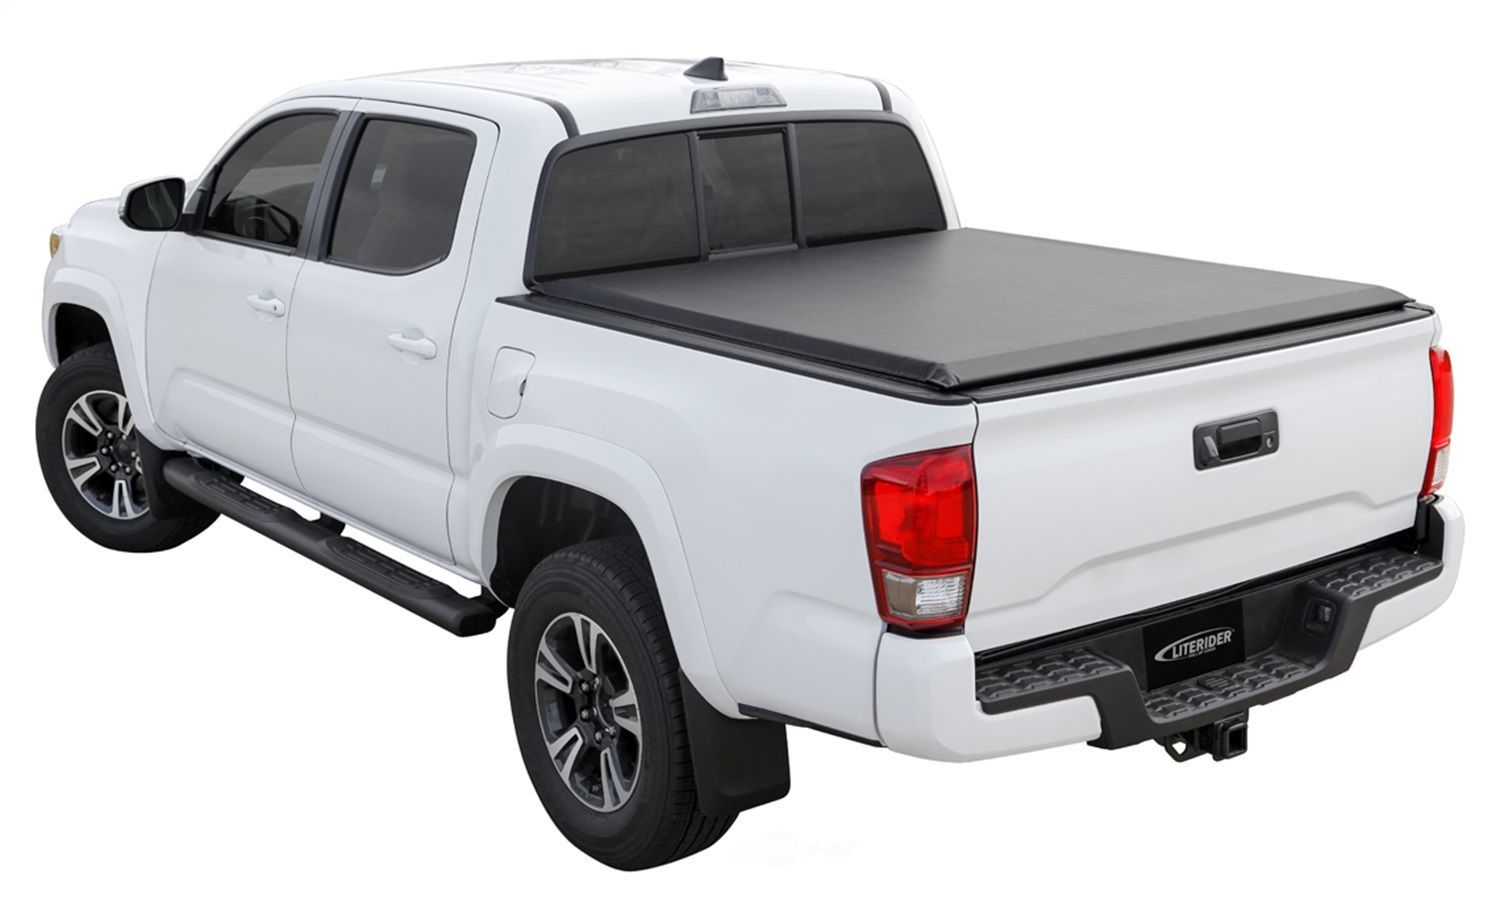 ACCESS COVER - Literider Roll-up Cover - XBP 35269